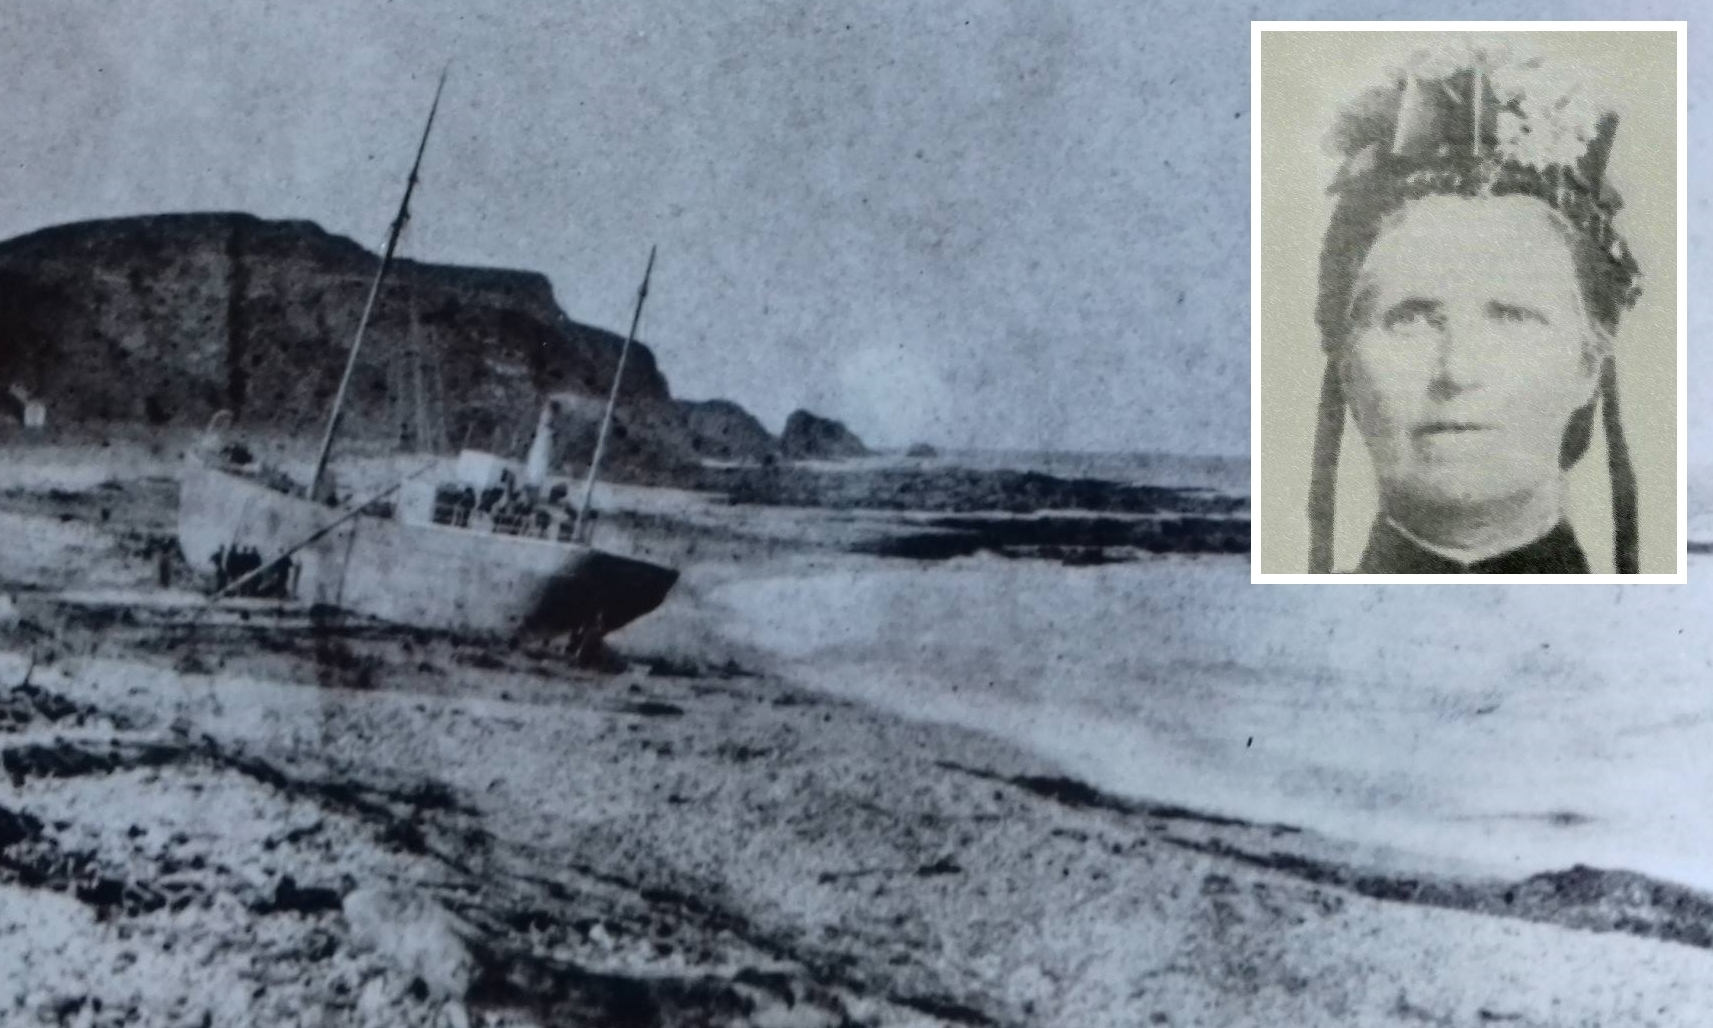 The stricken William Hope and (inset) lifesaver Jane Whyte.